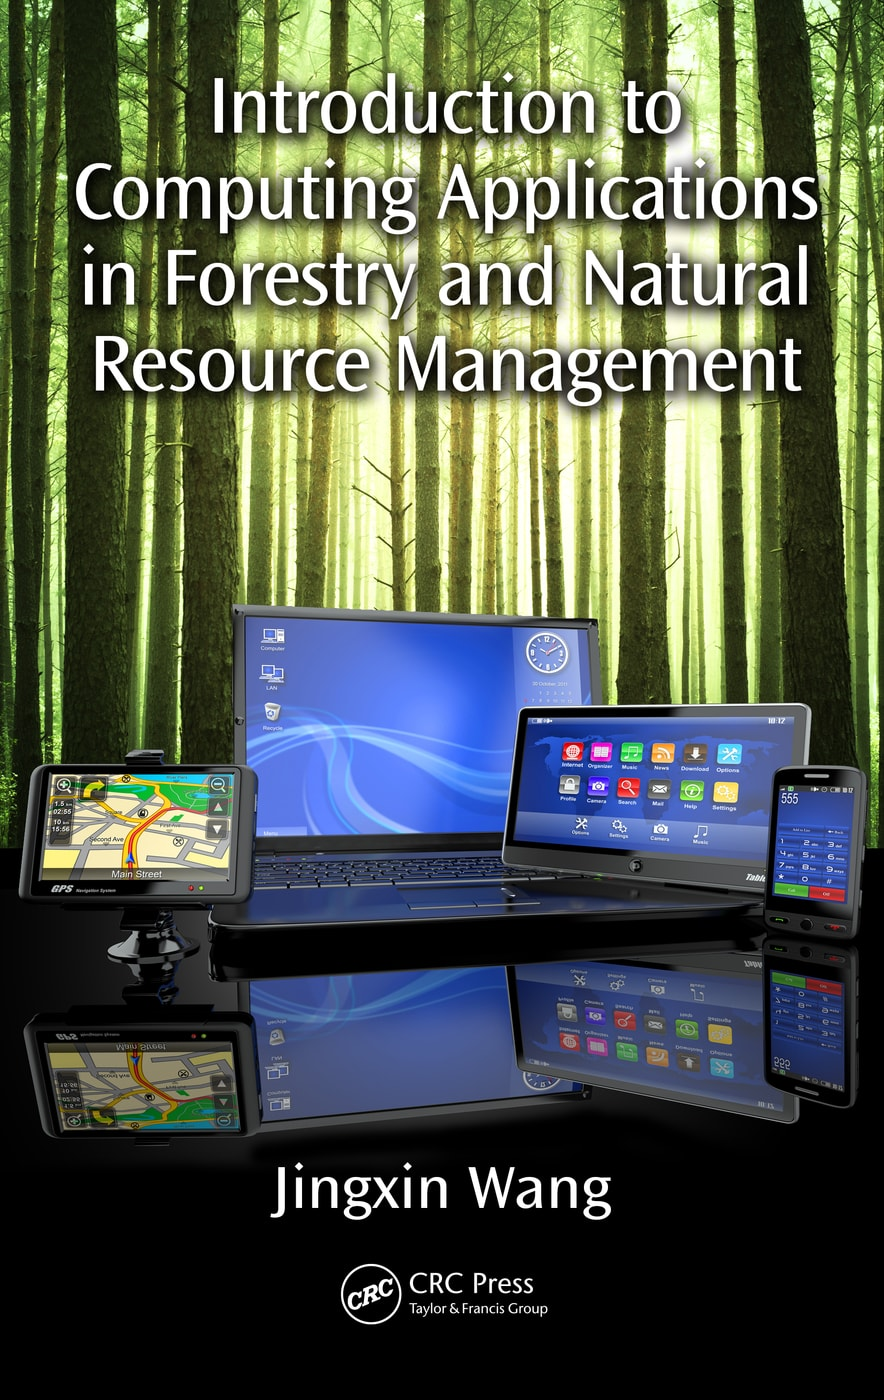 Intro to Computing Applications in Forestry & Natural Resour